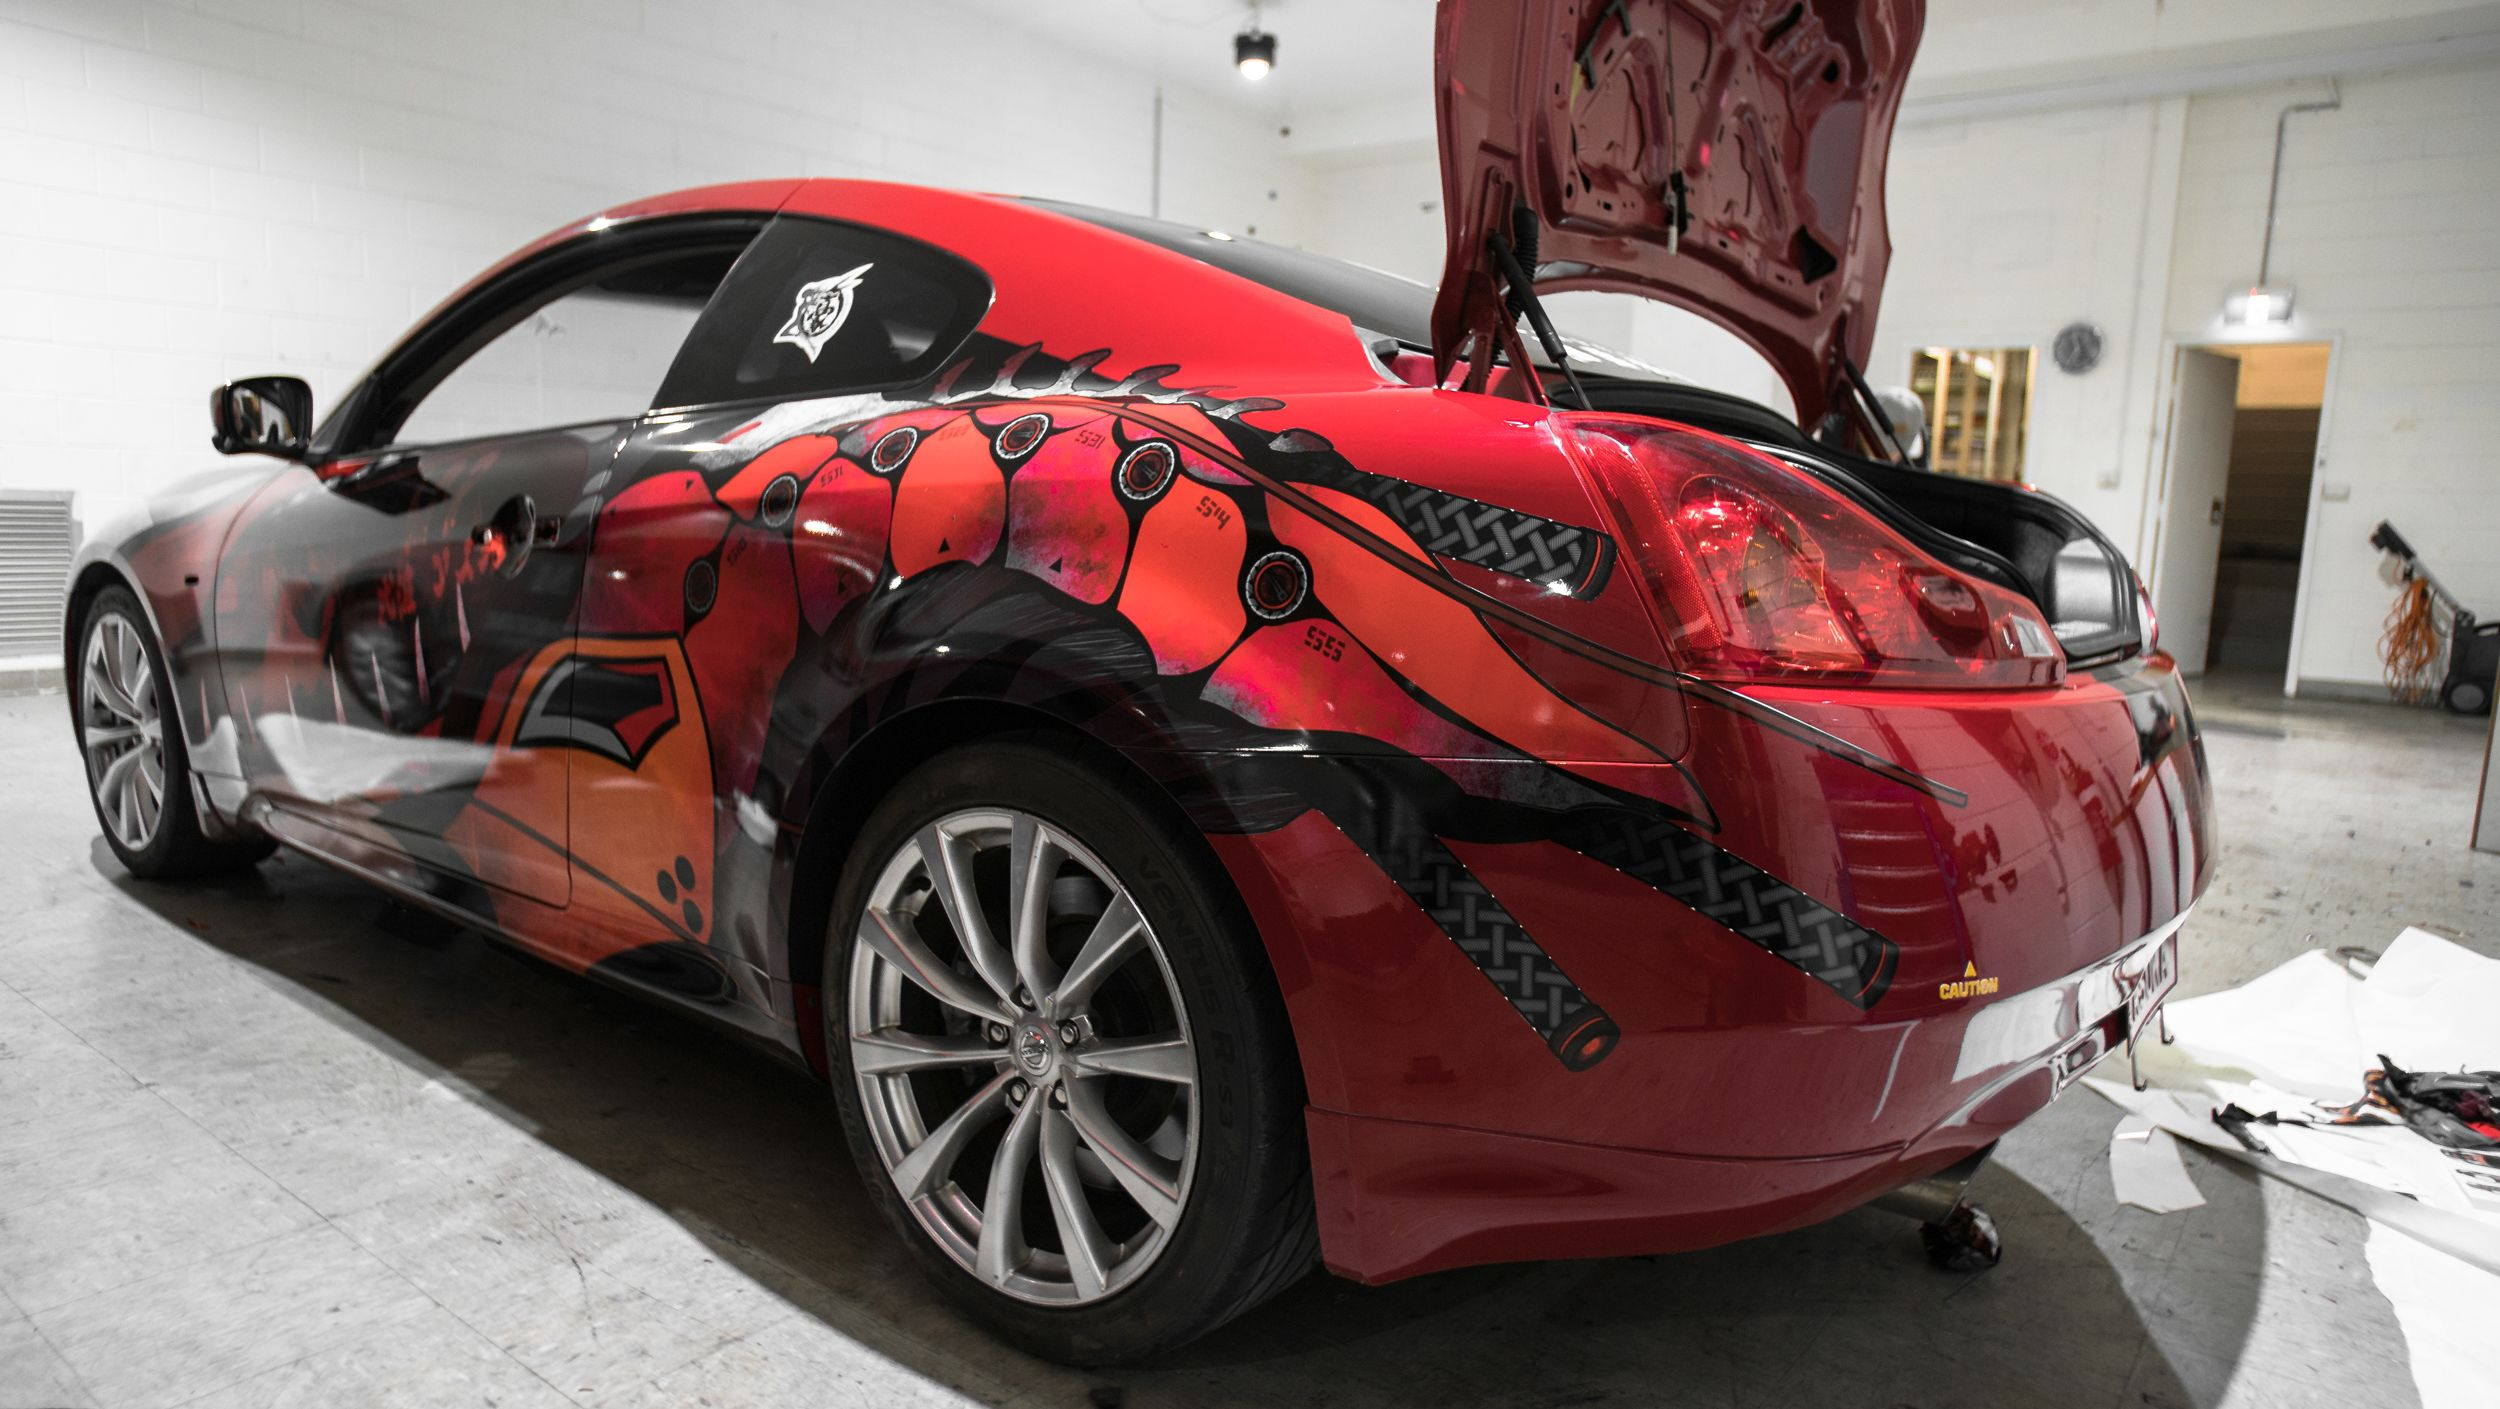 A Crazy Custom Wrap On This Infiniti G37 Befitting The Owners Crazy Taste Car Wrap Custom Wraps Paint Protection